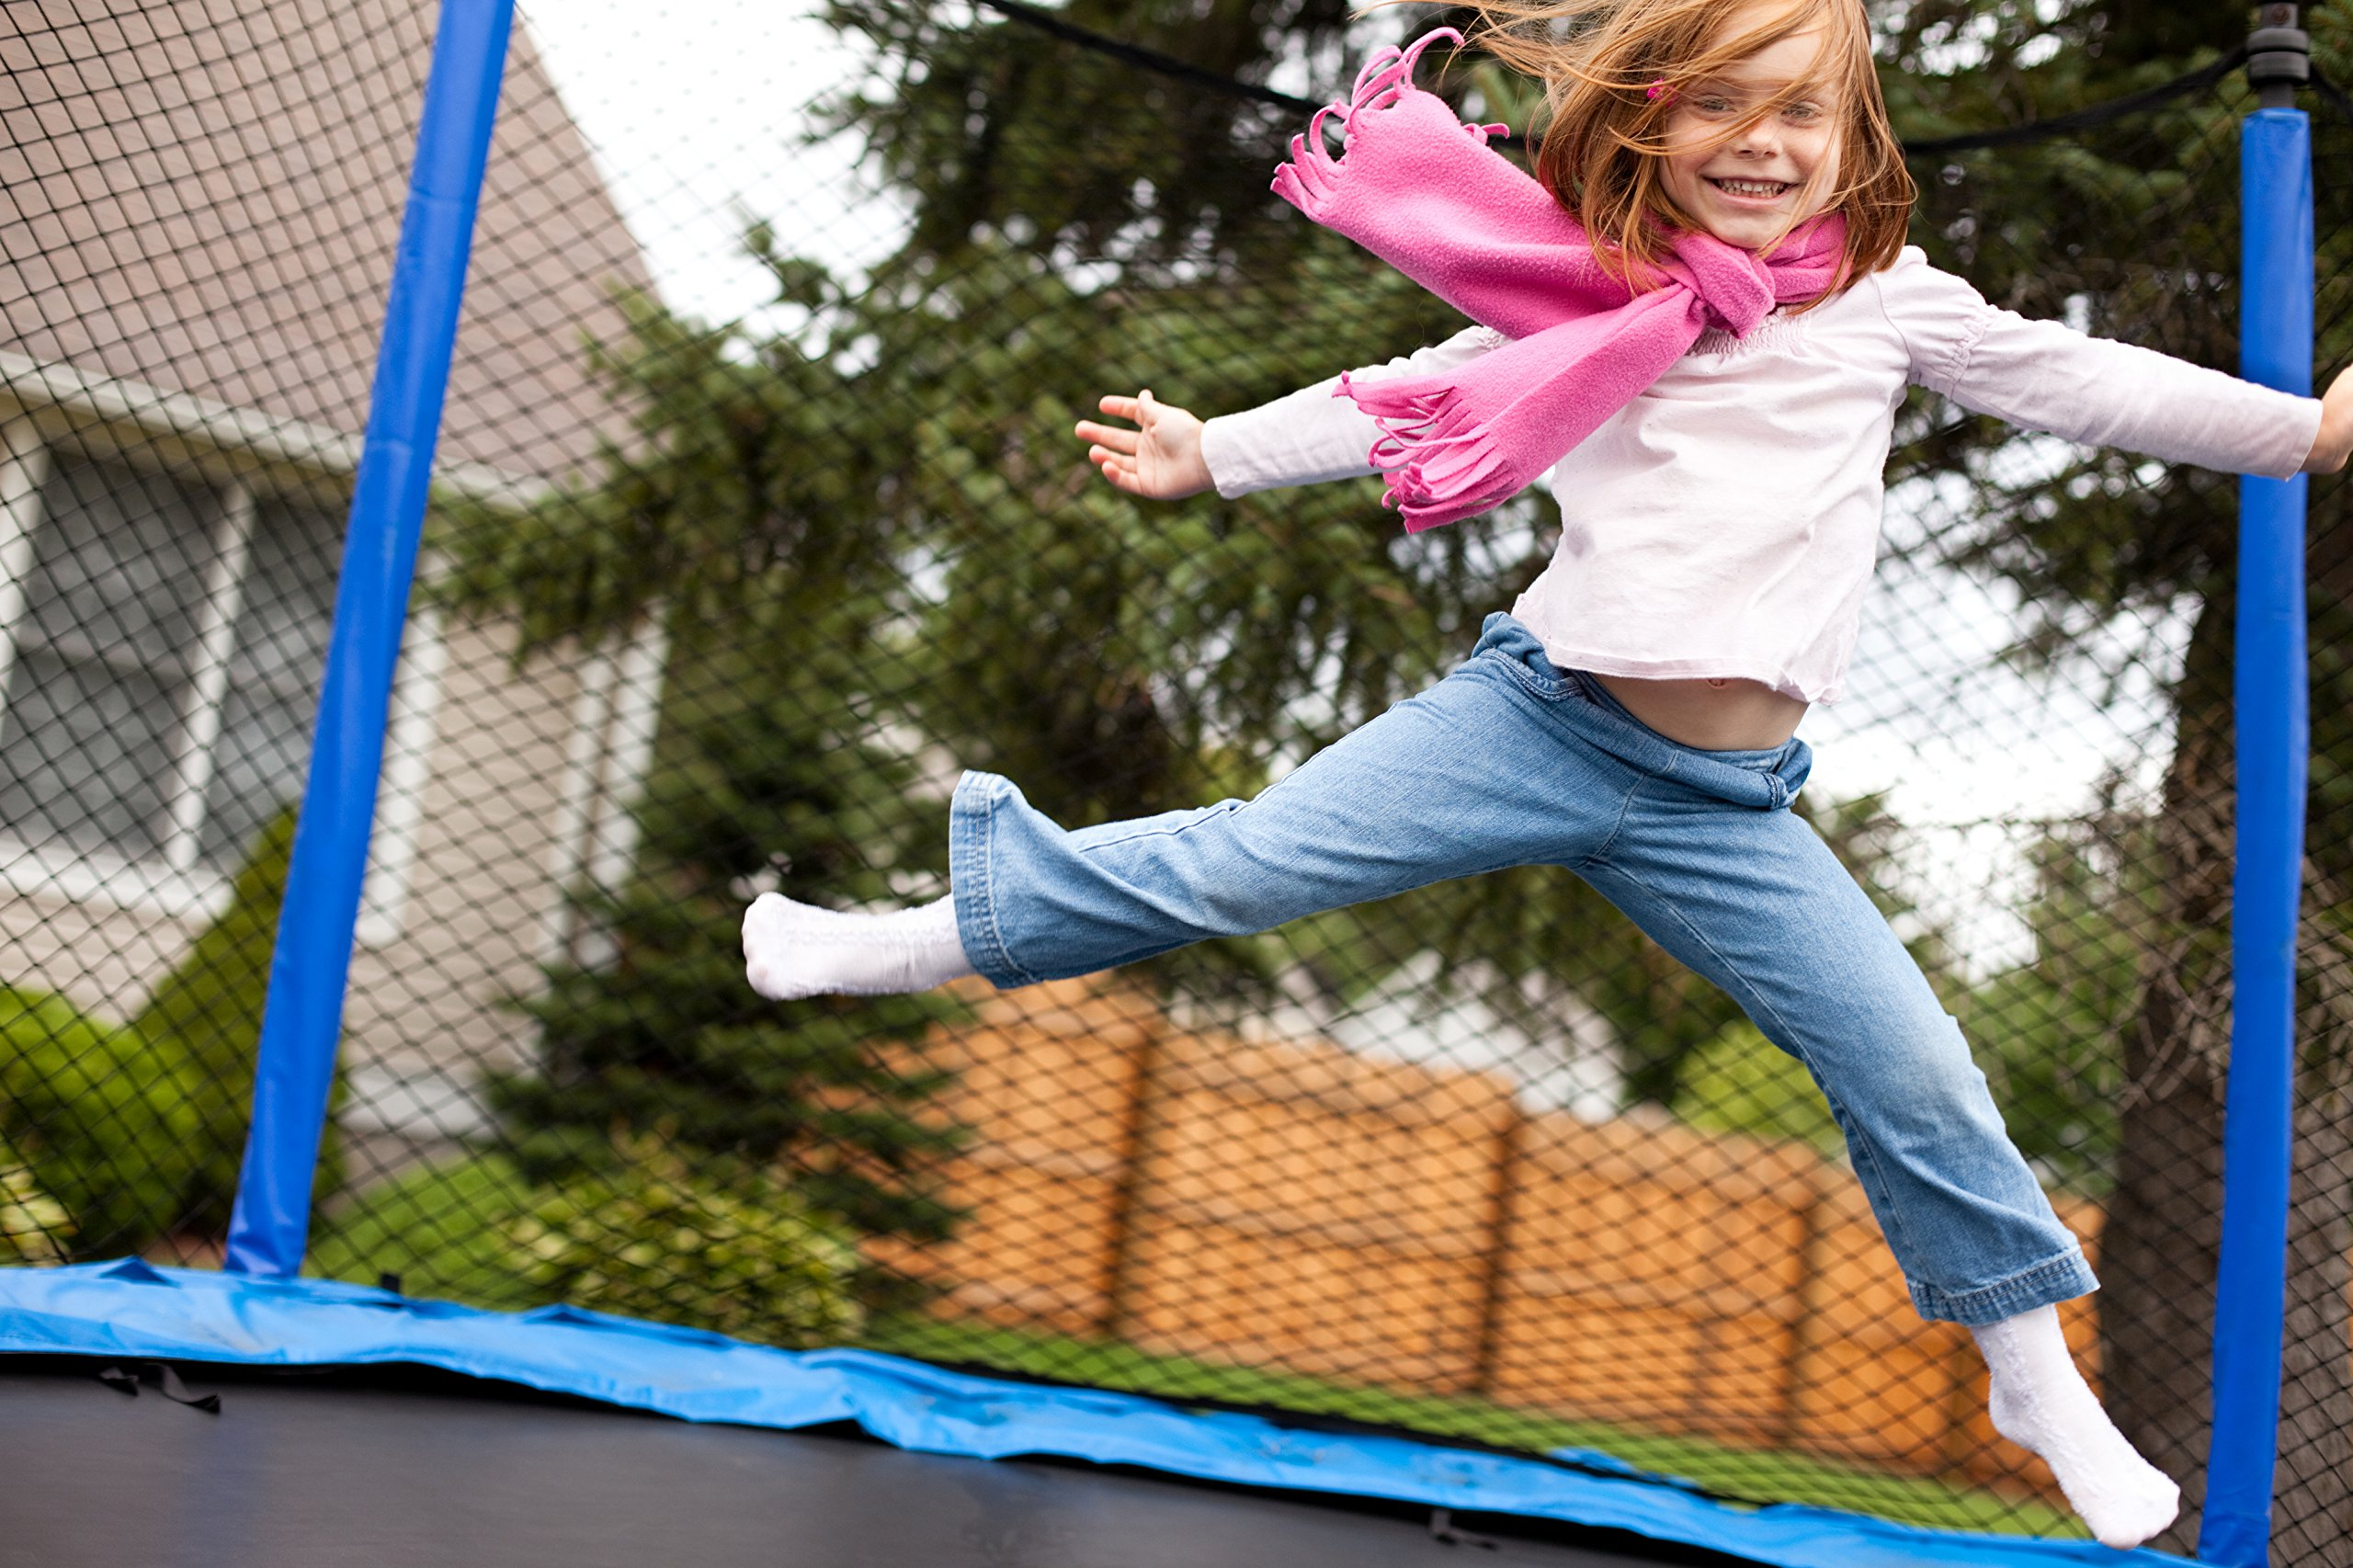 Nets For Trampoline Enclosures | By Trampoline Pro | Select Your Pole Type | Select Your Size, Shape, and Number of Poles | NETS ONLY (Arched Poles (Sleeves), 14ft Frame - 4 Arches) by Trampoline Pro